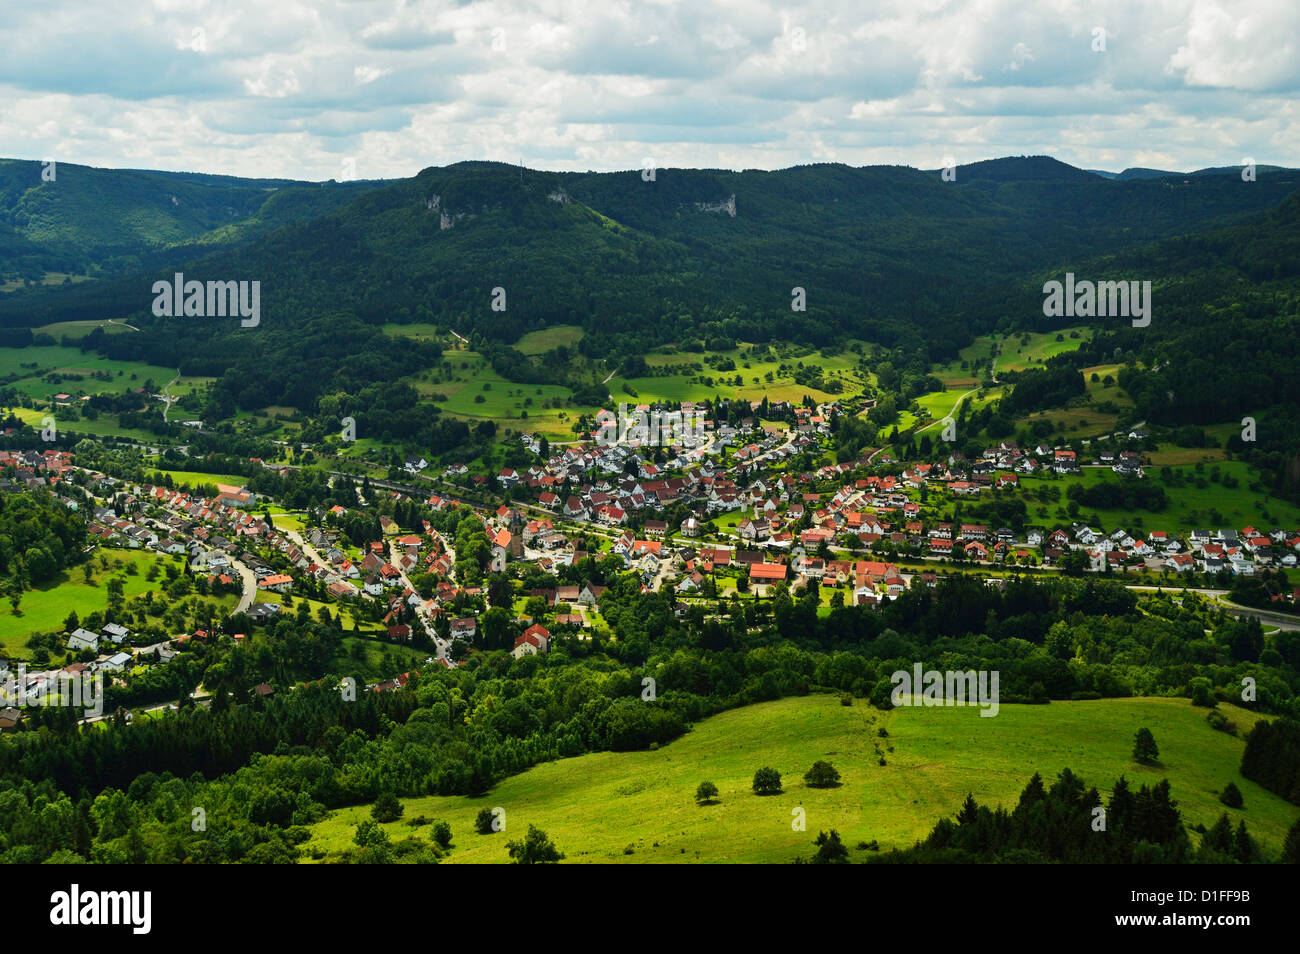 View of Laufen an der Eyach, Swabian Alb (Swabian Alps), Baden-Wurttemberg, Germany, Europe - Stock Image